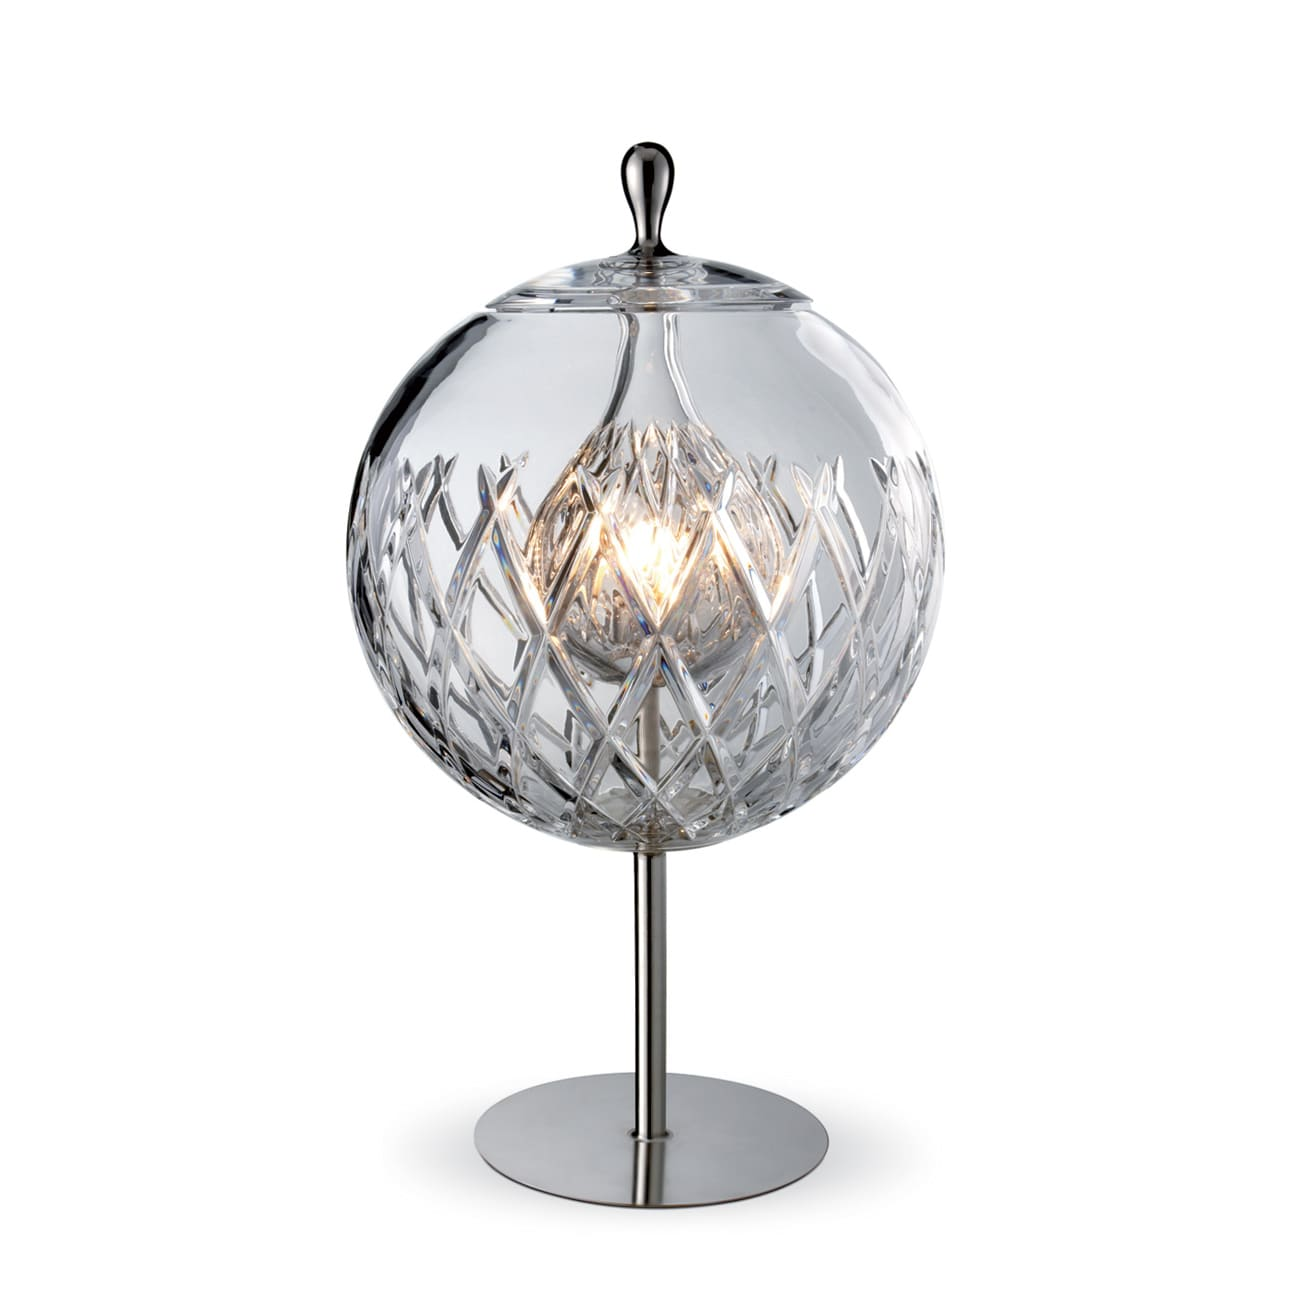 Image of: Sfera Crystal Lamp Baccarat Vessiere Cristaux